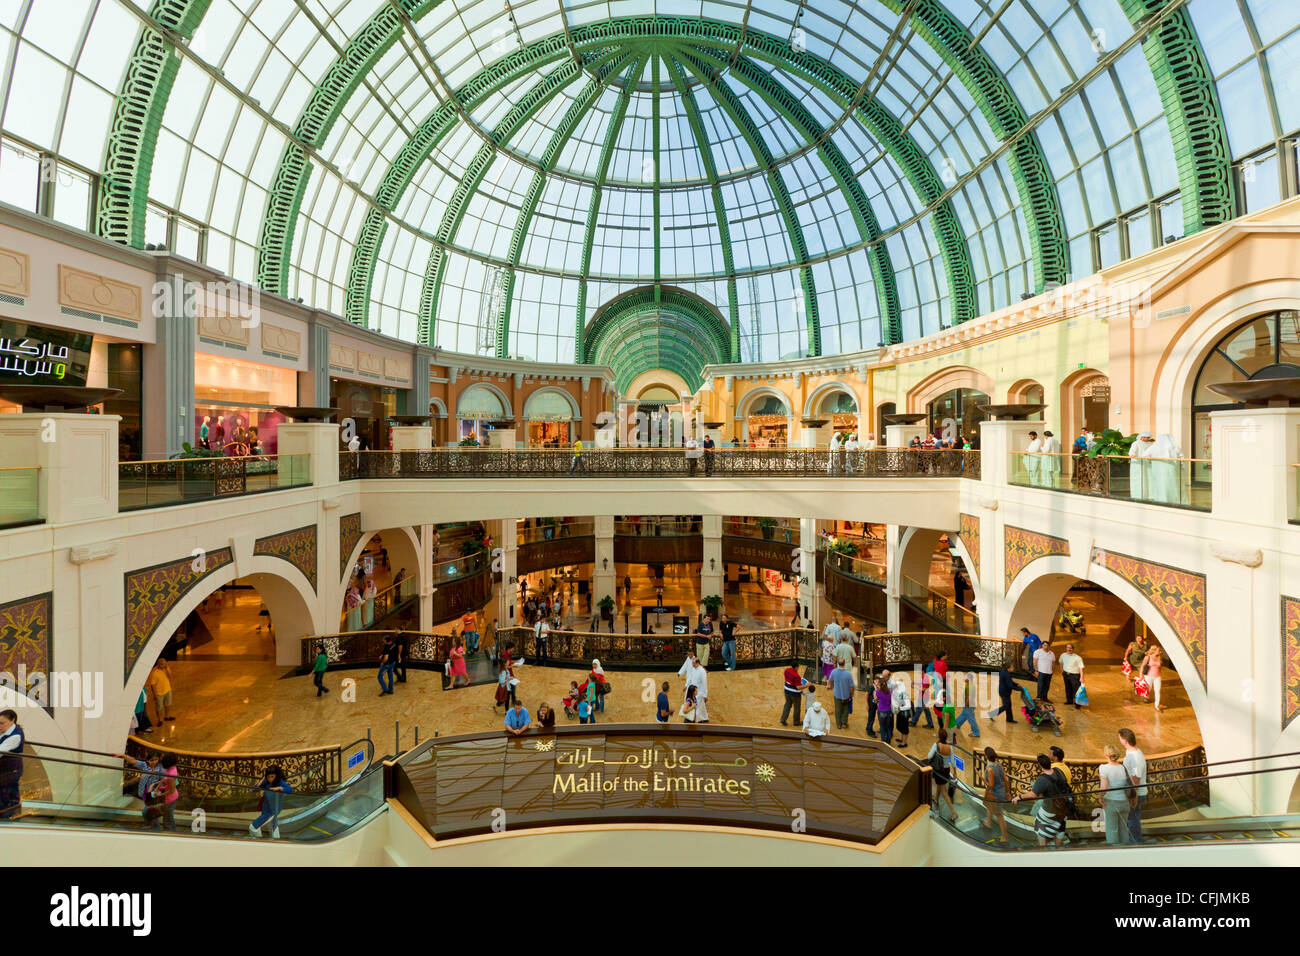 L'intérieur du centre commercial Mall of the Emirates, Dubaï, Émirats arabes unis, Moyen Orient Photo Stock